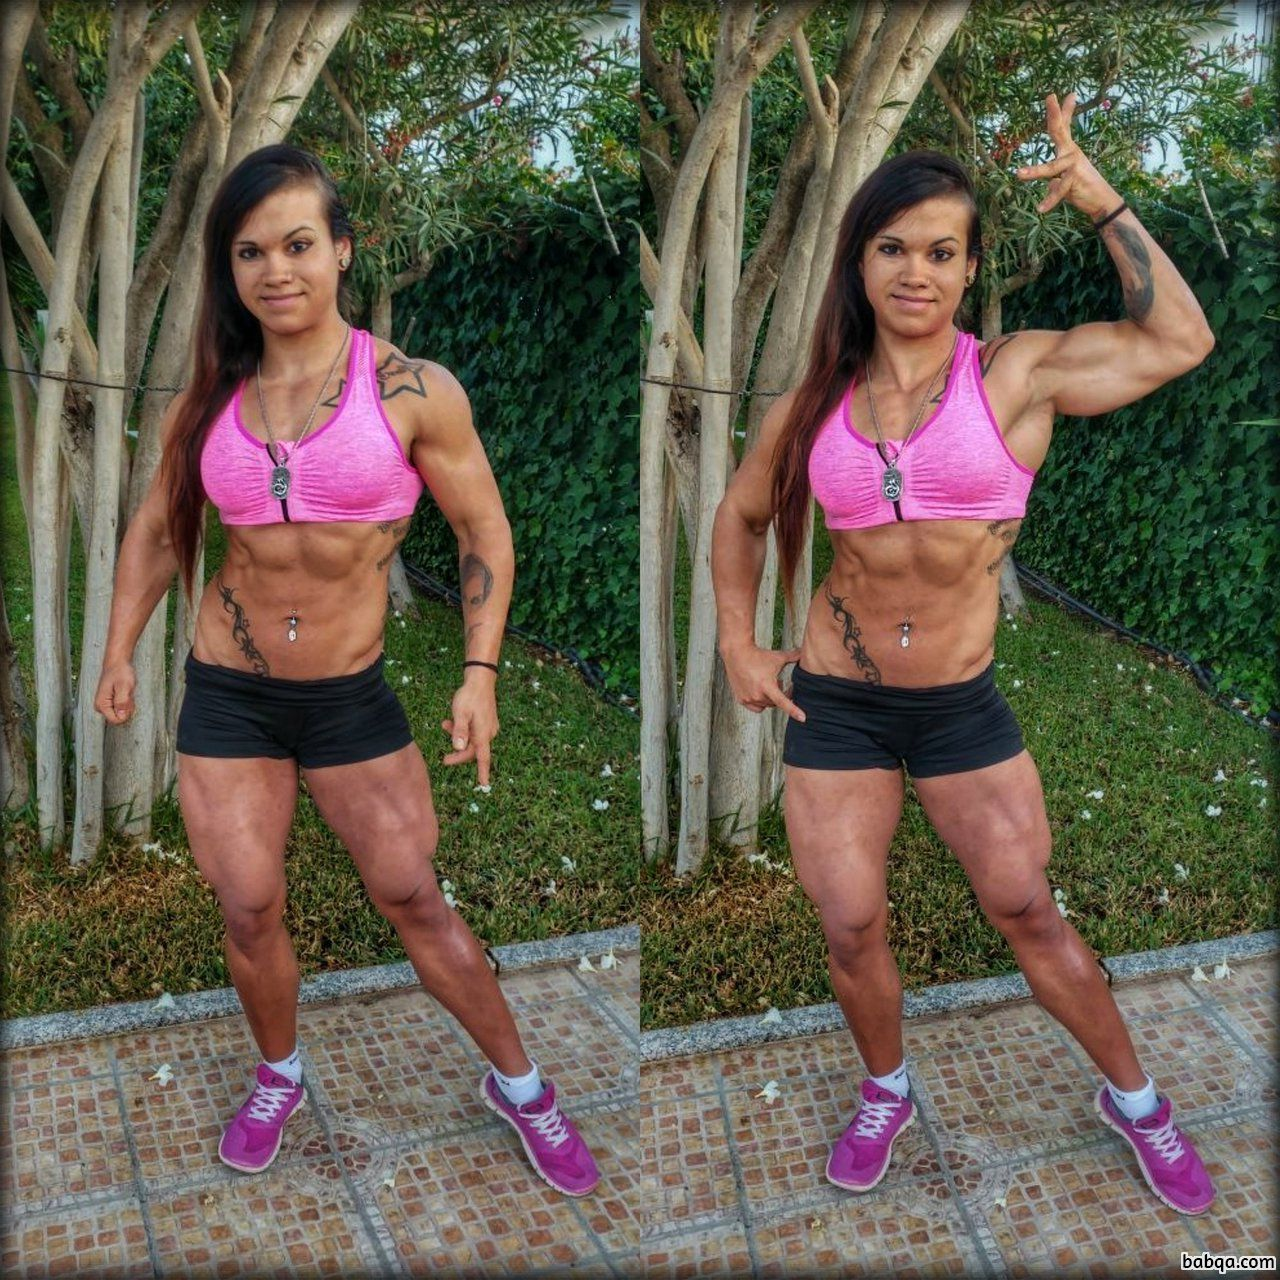 hot female with fitness body and toned legs image from tumblr